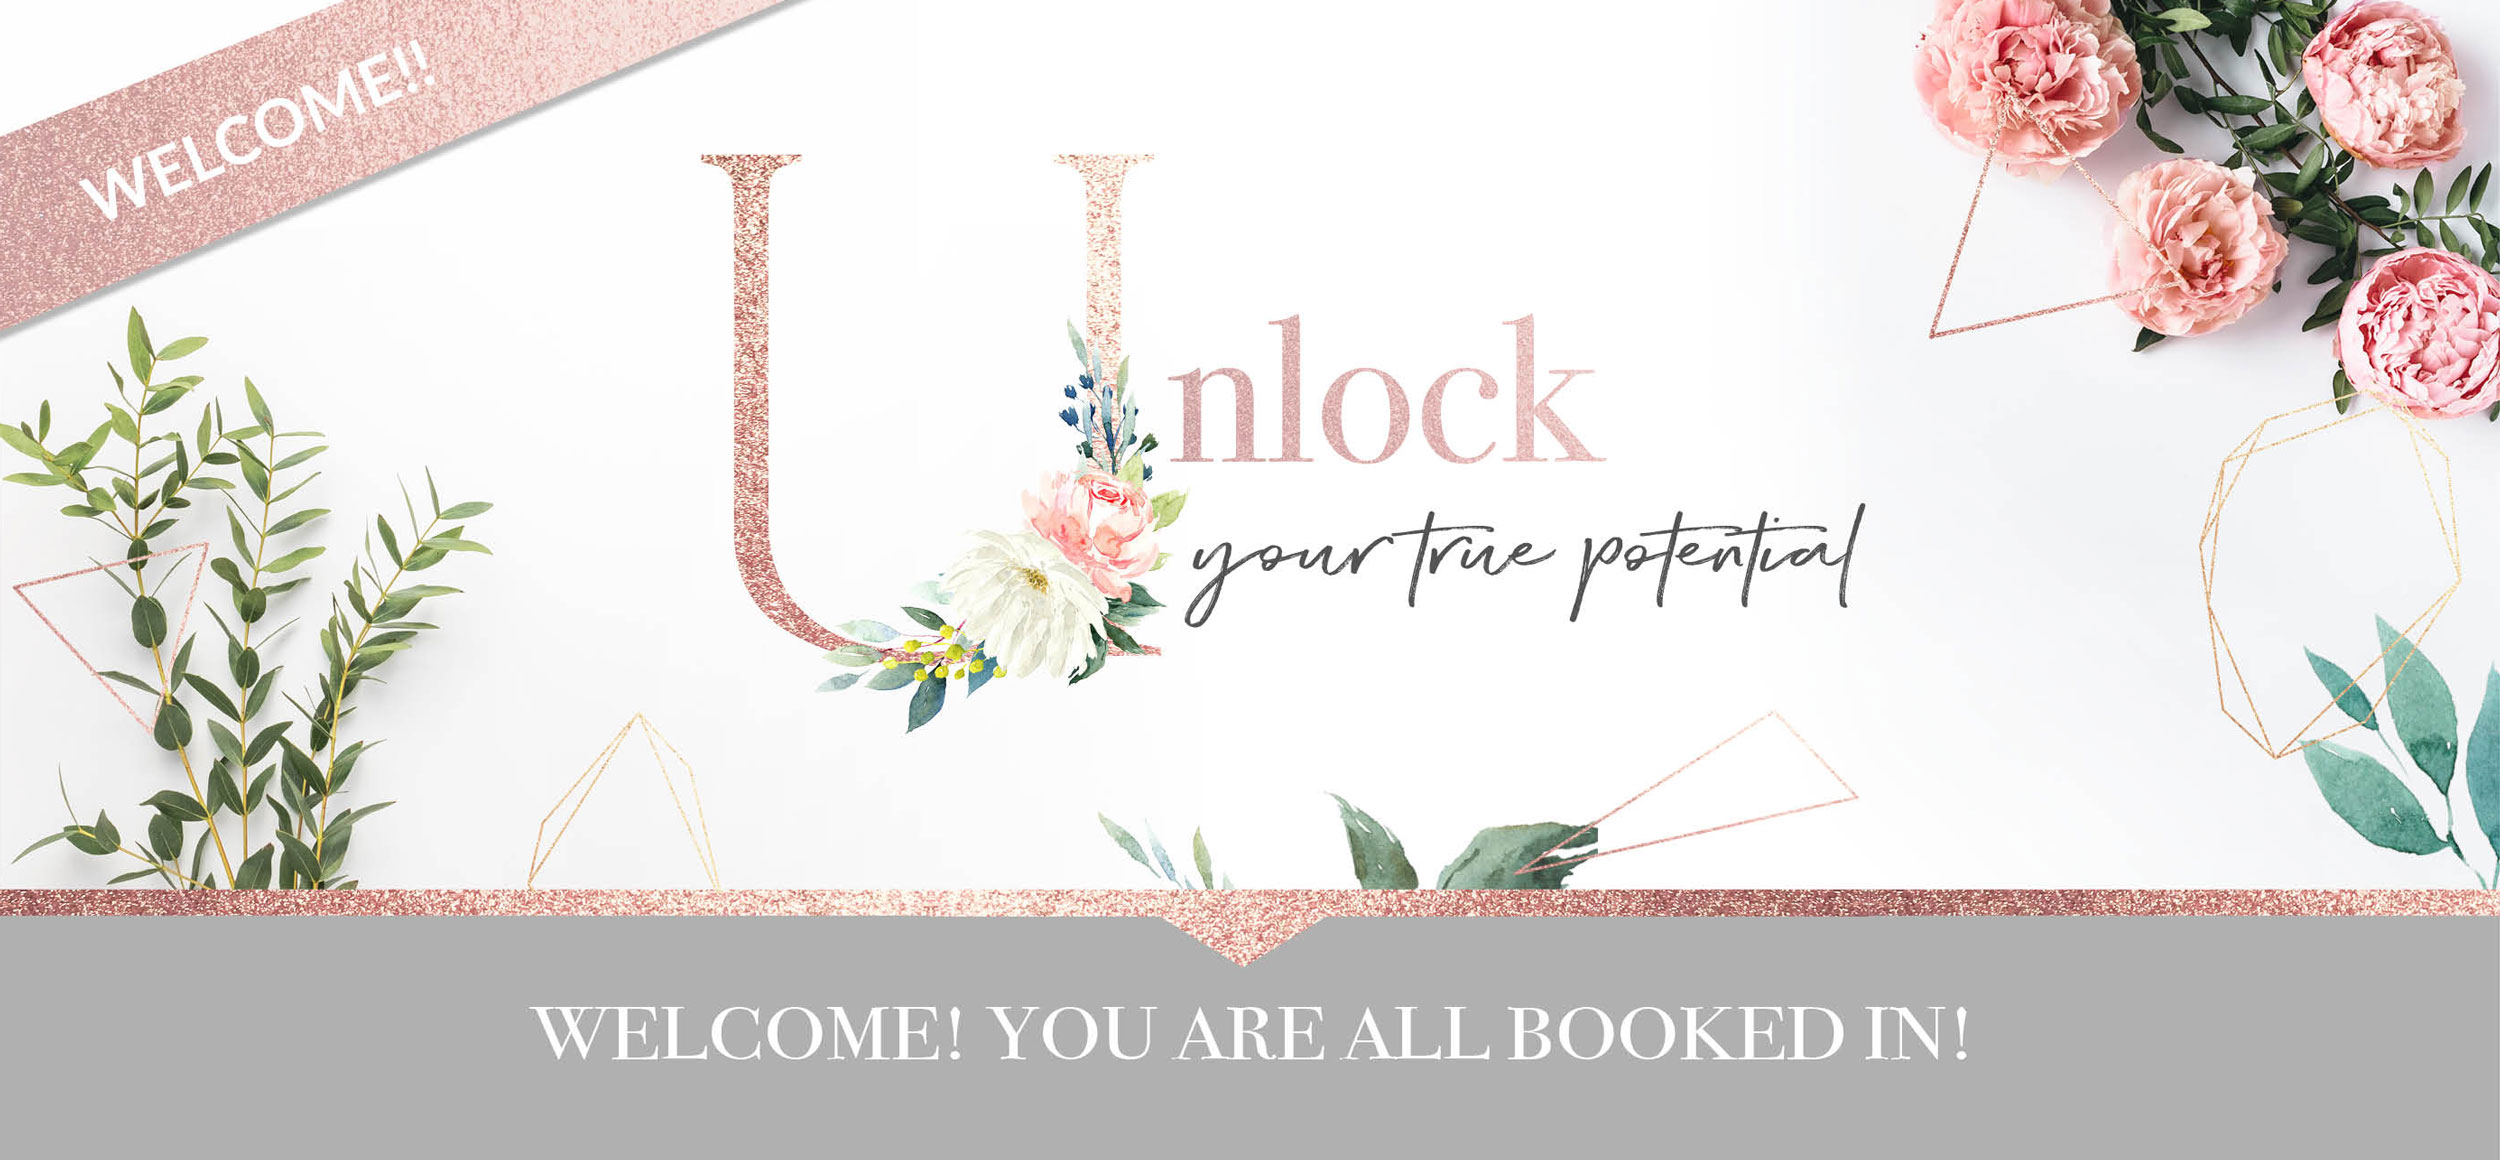 unlock-your-true-potential-all-booked-in